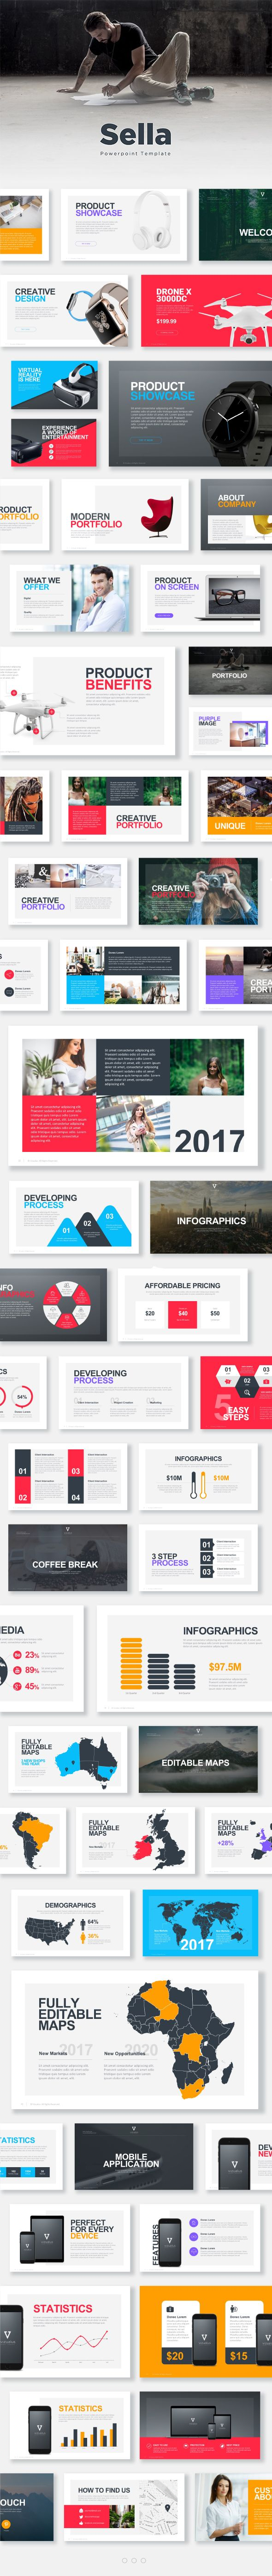 Sella powerpoint template template presentation templates and sella powerpoint template presentation modern download httpsgraphicriveritemsella powerpoint template18036459refpxcr toneelgroepblik Images